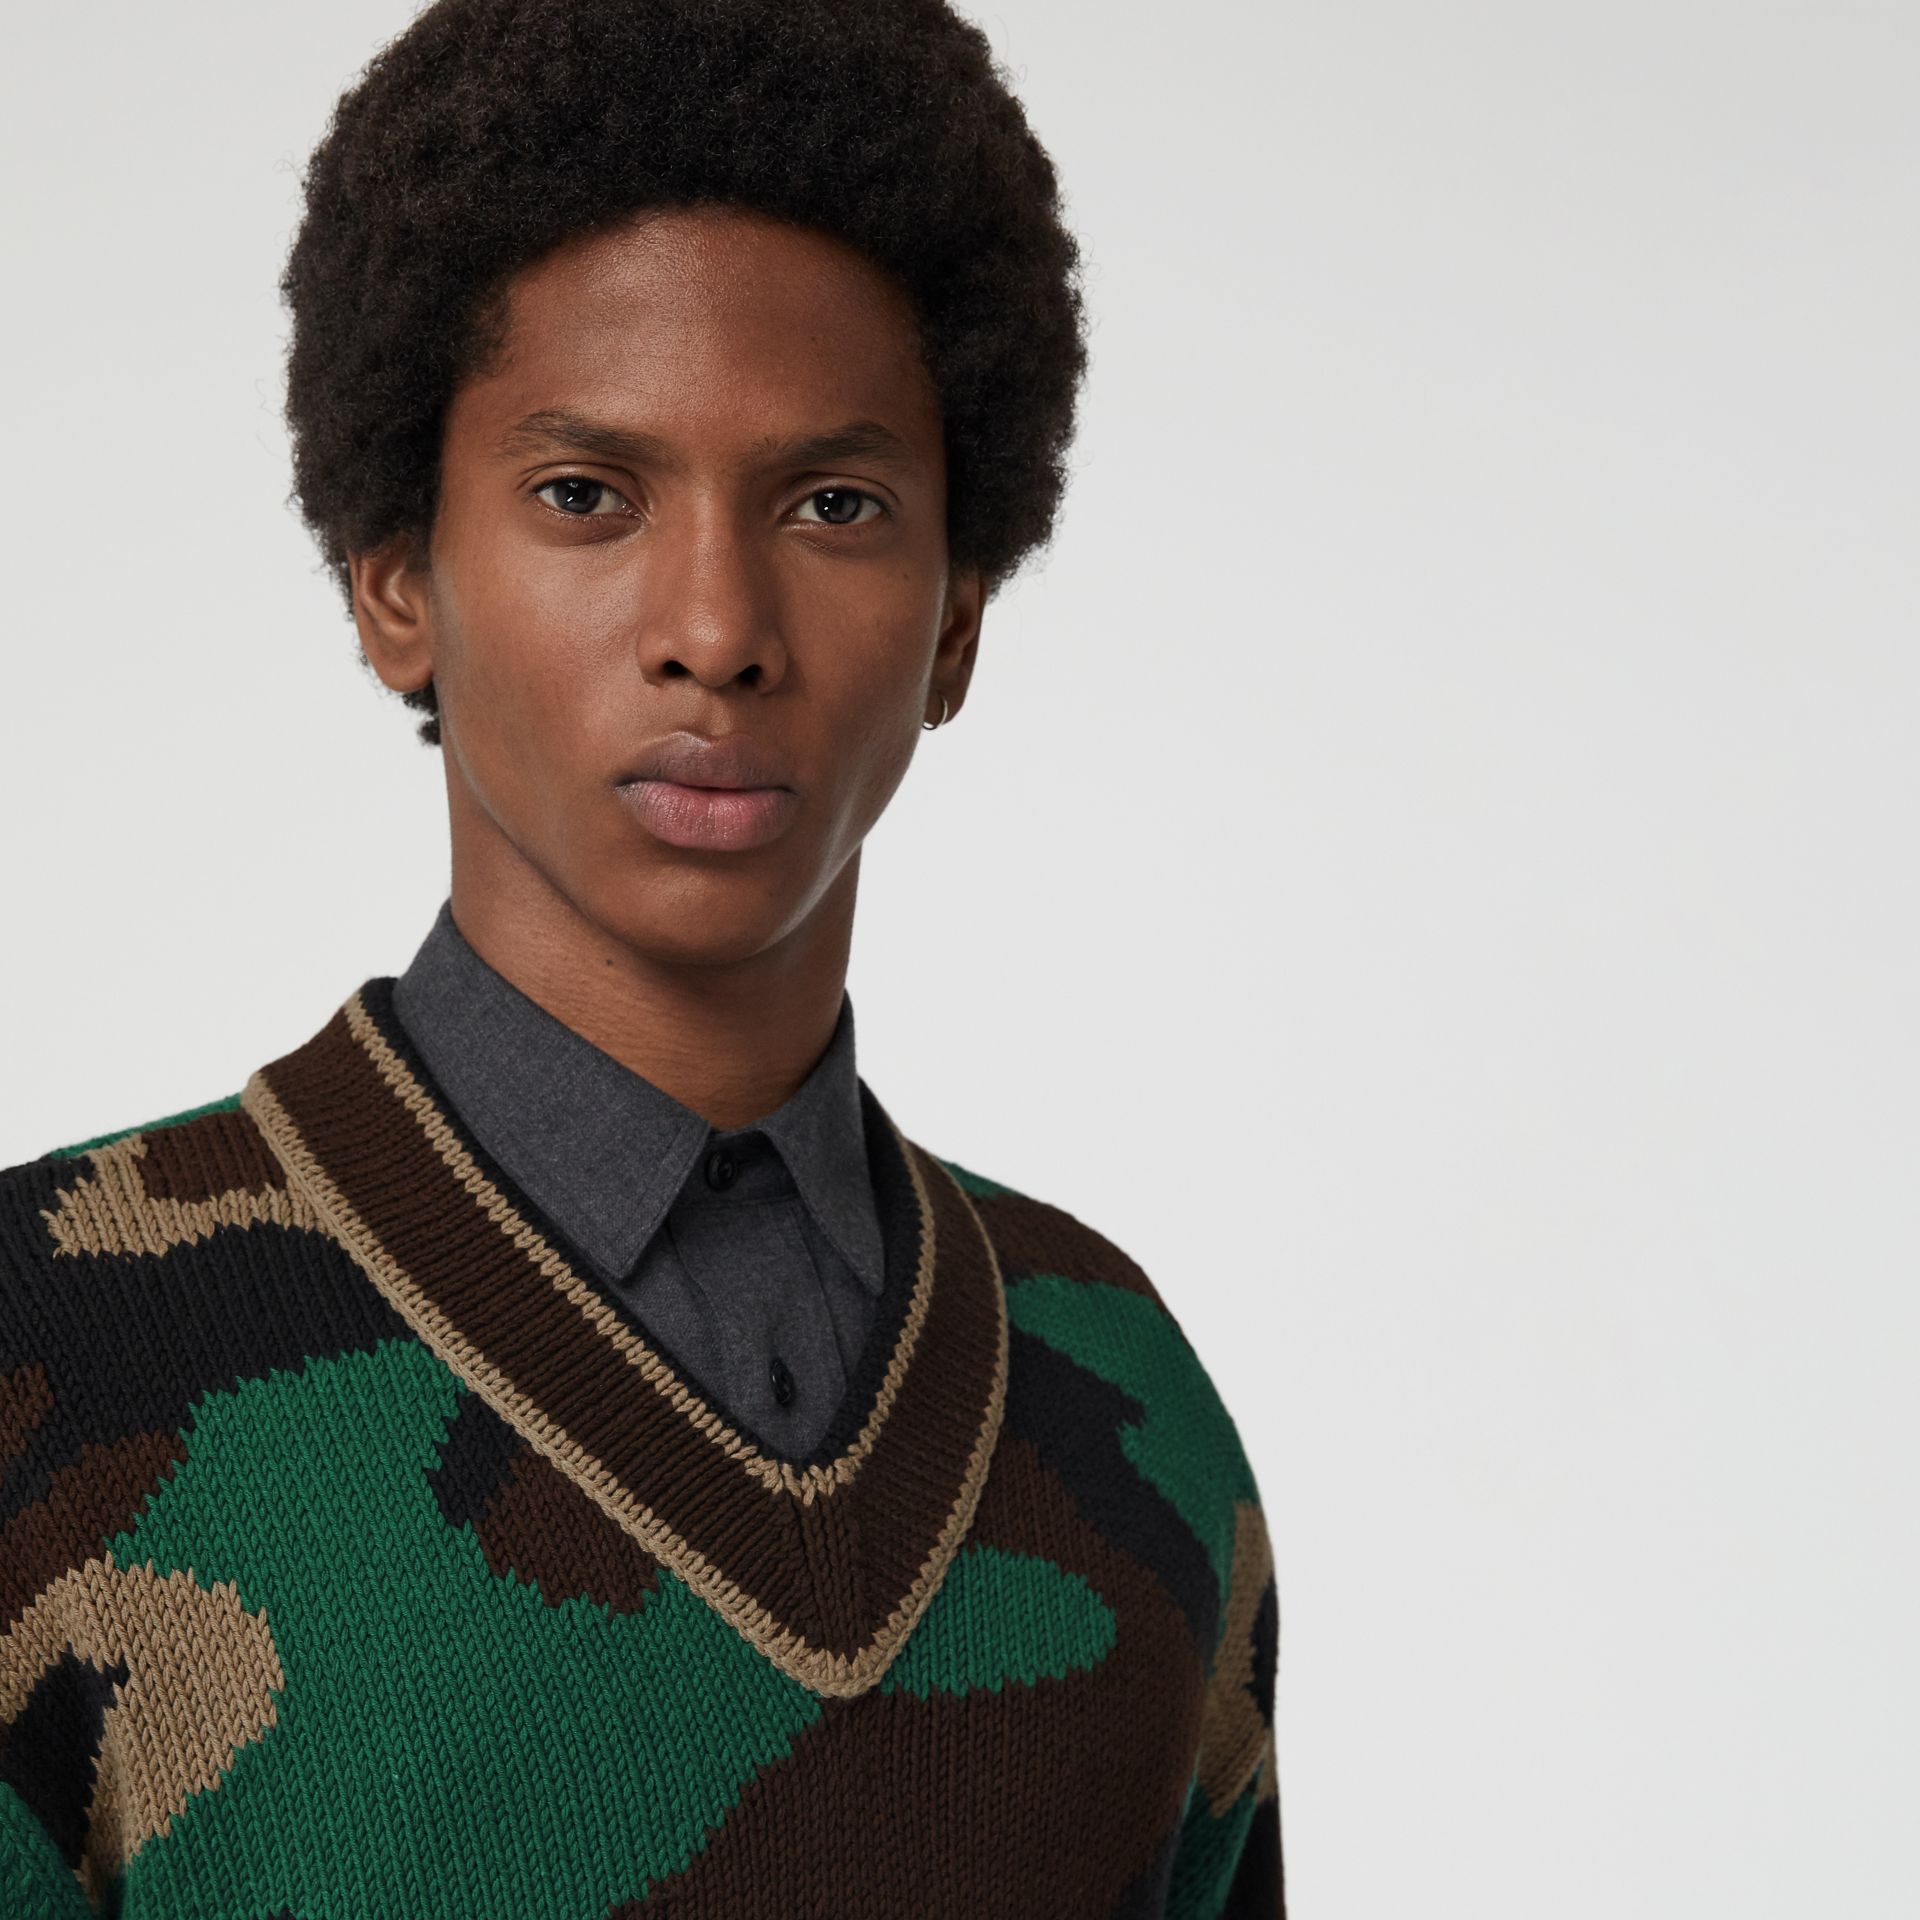 Camouflage Intarsia Cotton Blend Sweater in Forest Green - Men | Burberry - gallery image 1